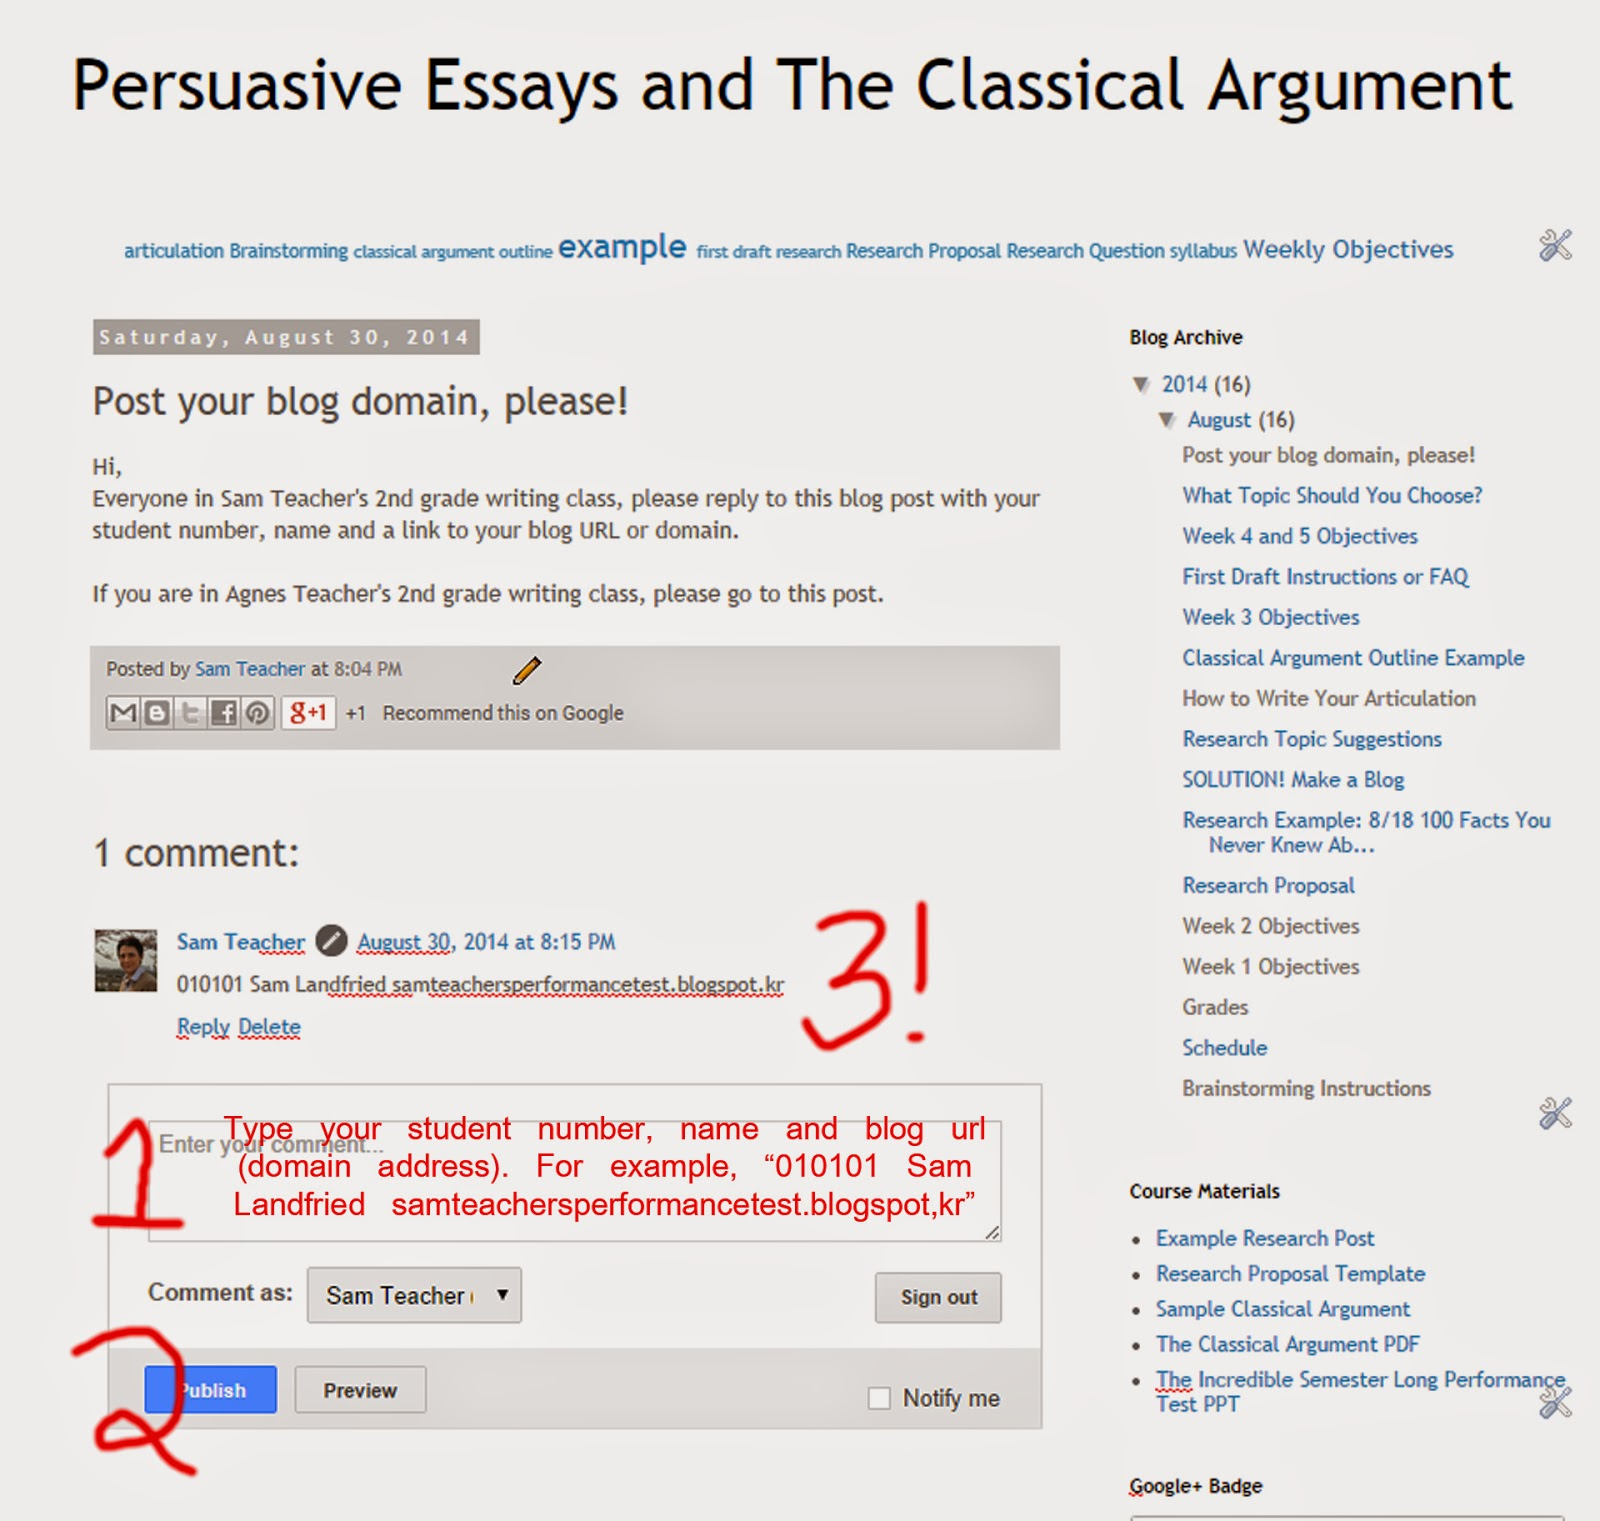 Persuasive Essays And The Classical Argument Post Your